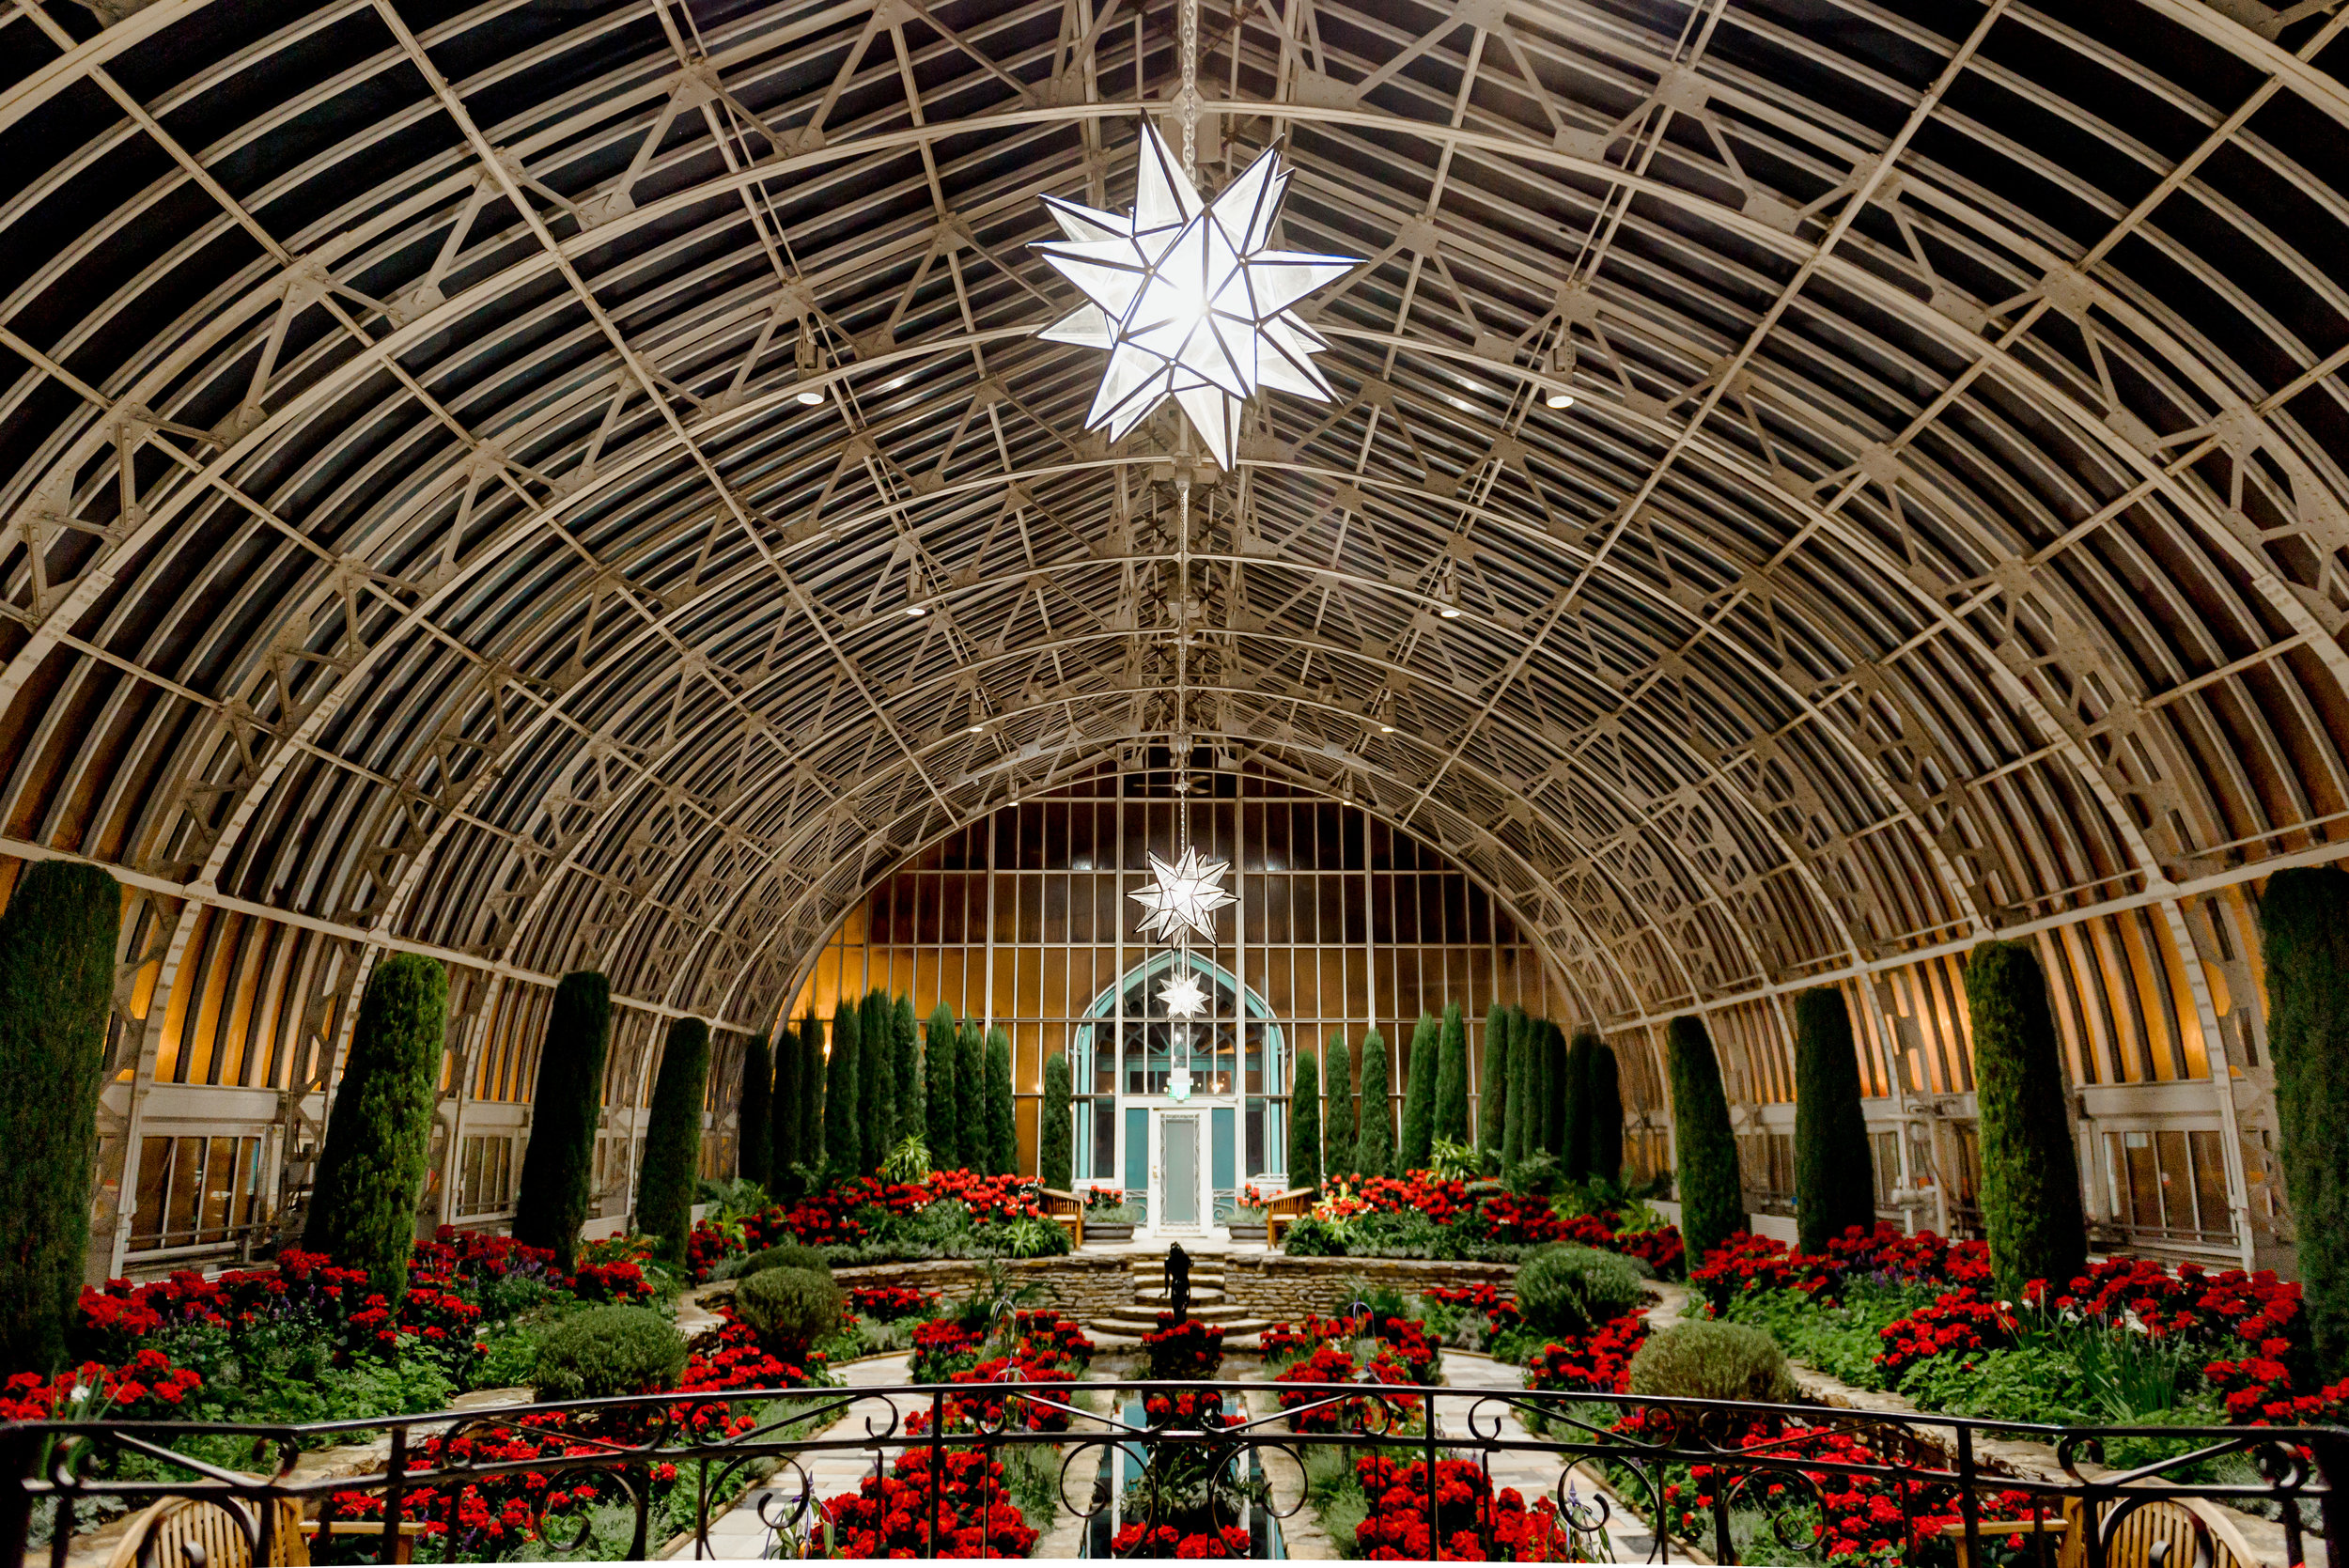 Como Conservatory Holiday Poinsettia Display - Romantic Proposal Locations in MN - Christmas Proposal Ideas